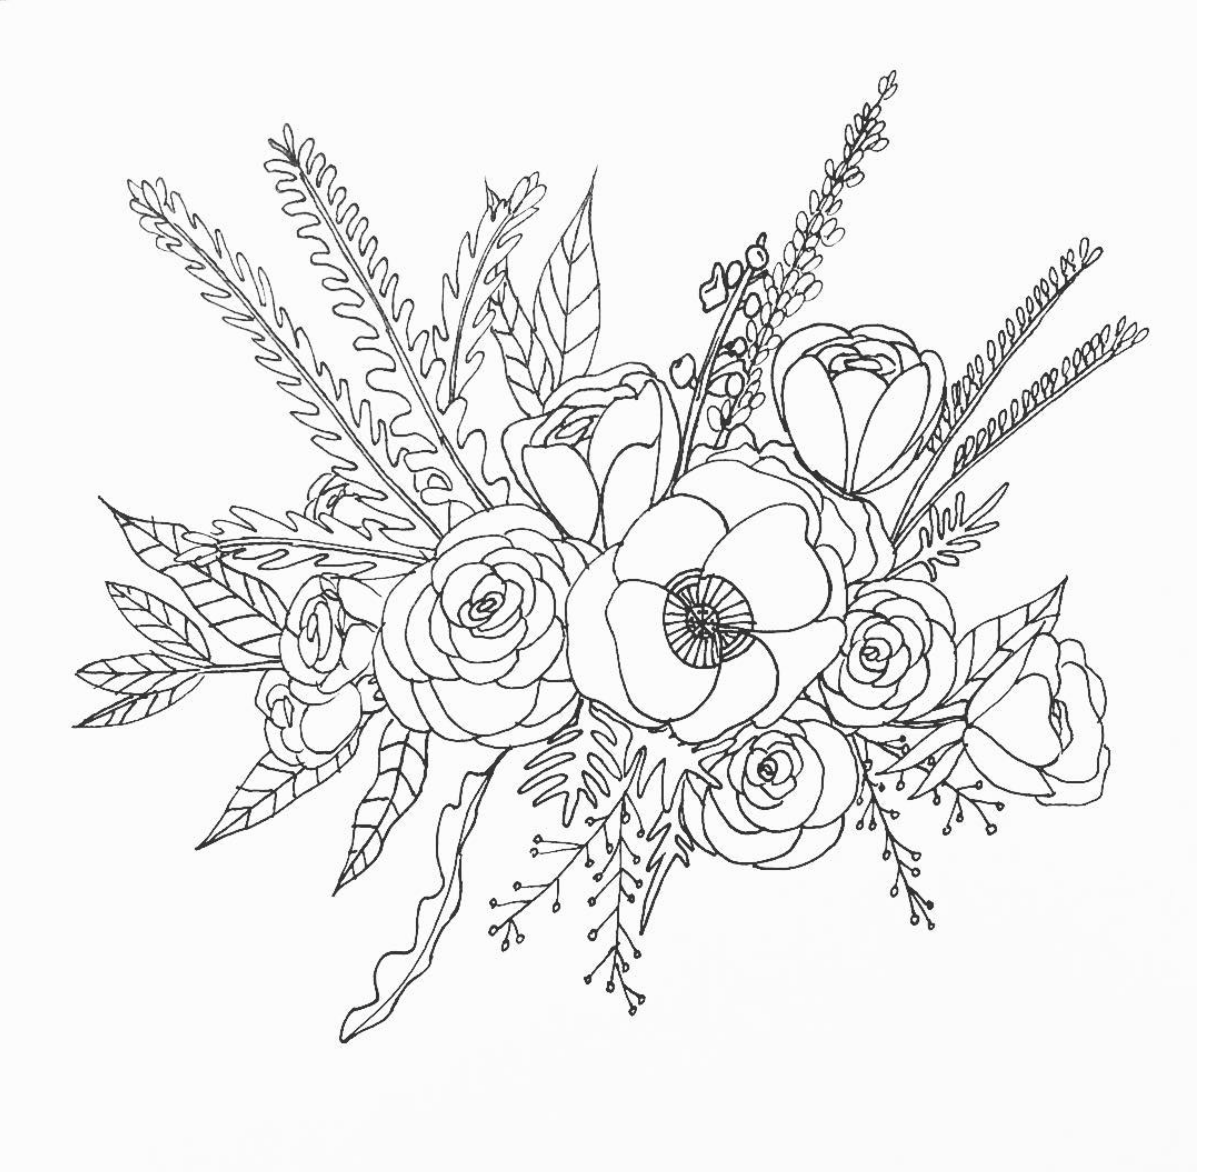 Beautiful Flower Line Drawing : Line drawing flower illustration floral bouquet